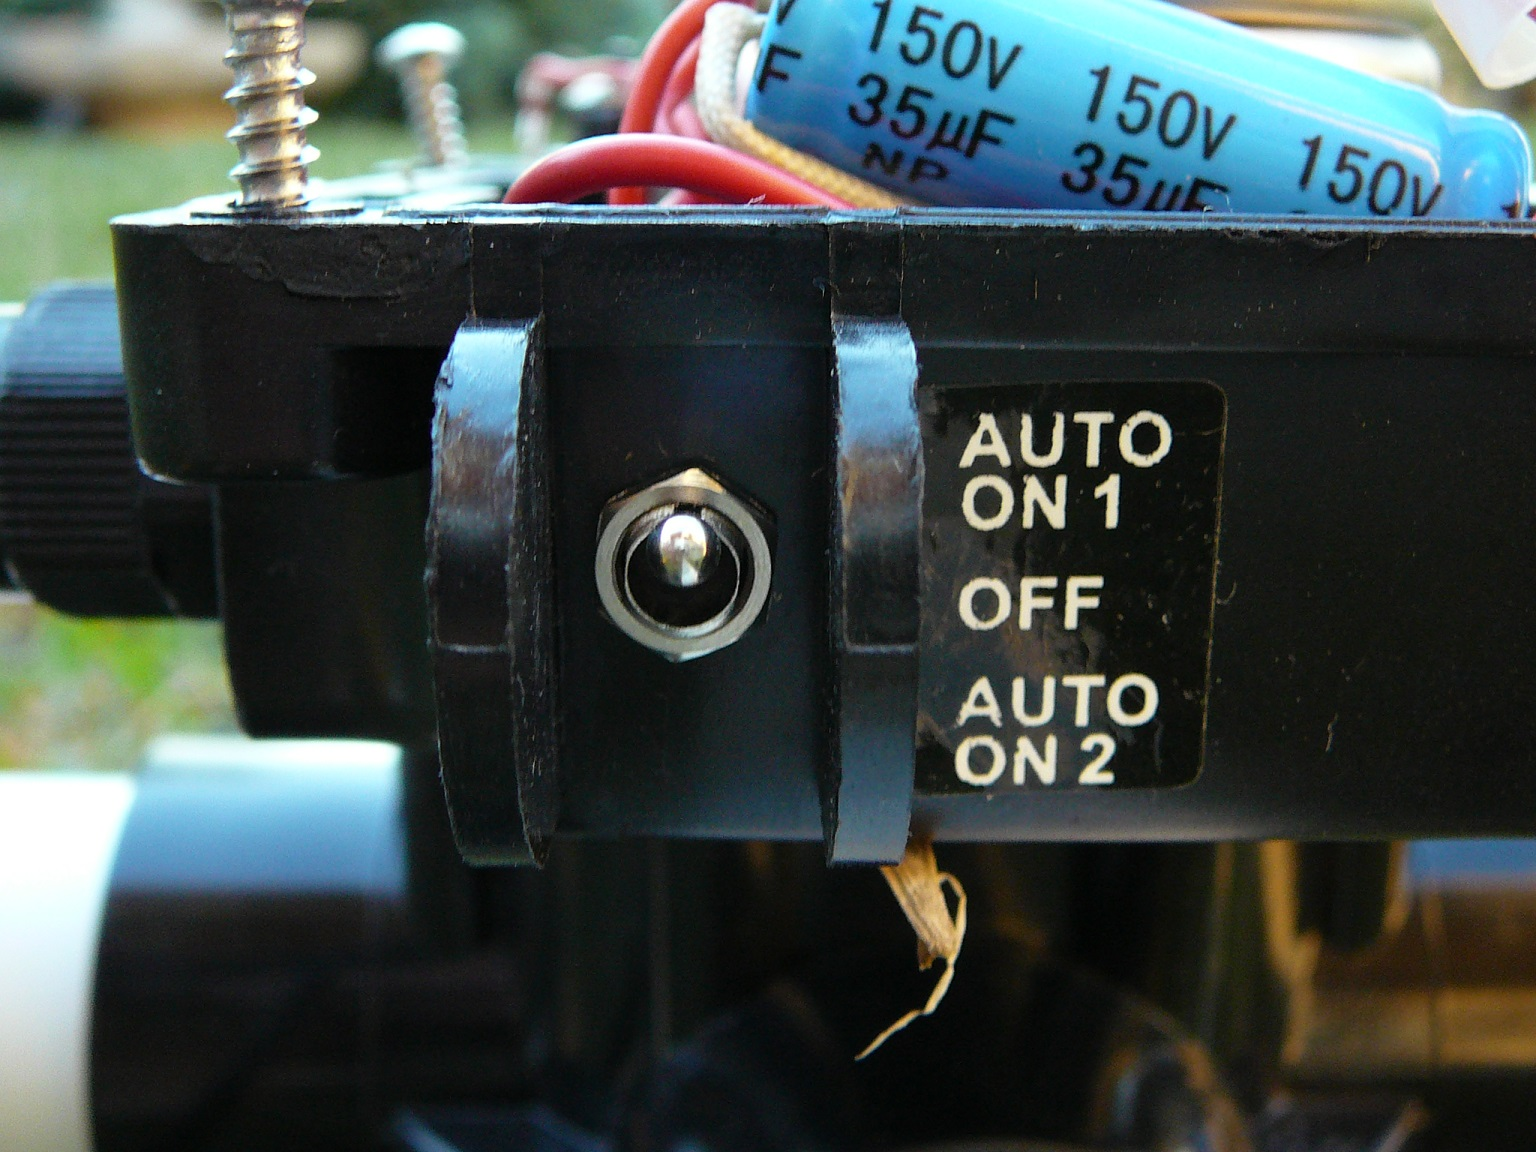 16 p1180441?format\=jpg\&scale\=both\&mode\=pad\&anchor\=middlecenter\&width\=300\&height\=250 gva 24 hayward wiring diagram best wiring diagram images gva-24 wiring diagram at readyjetset.co